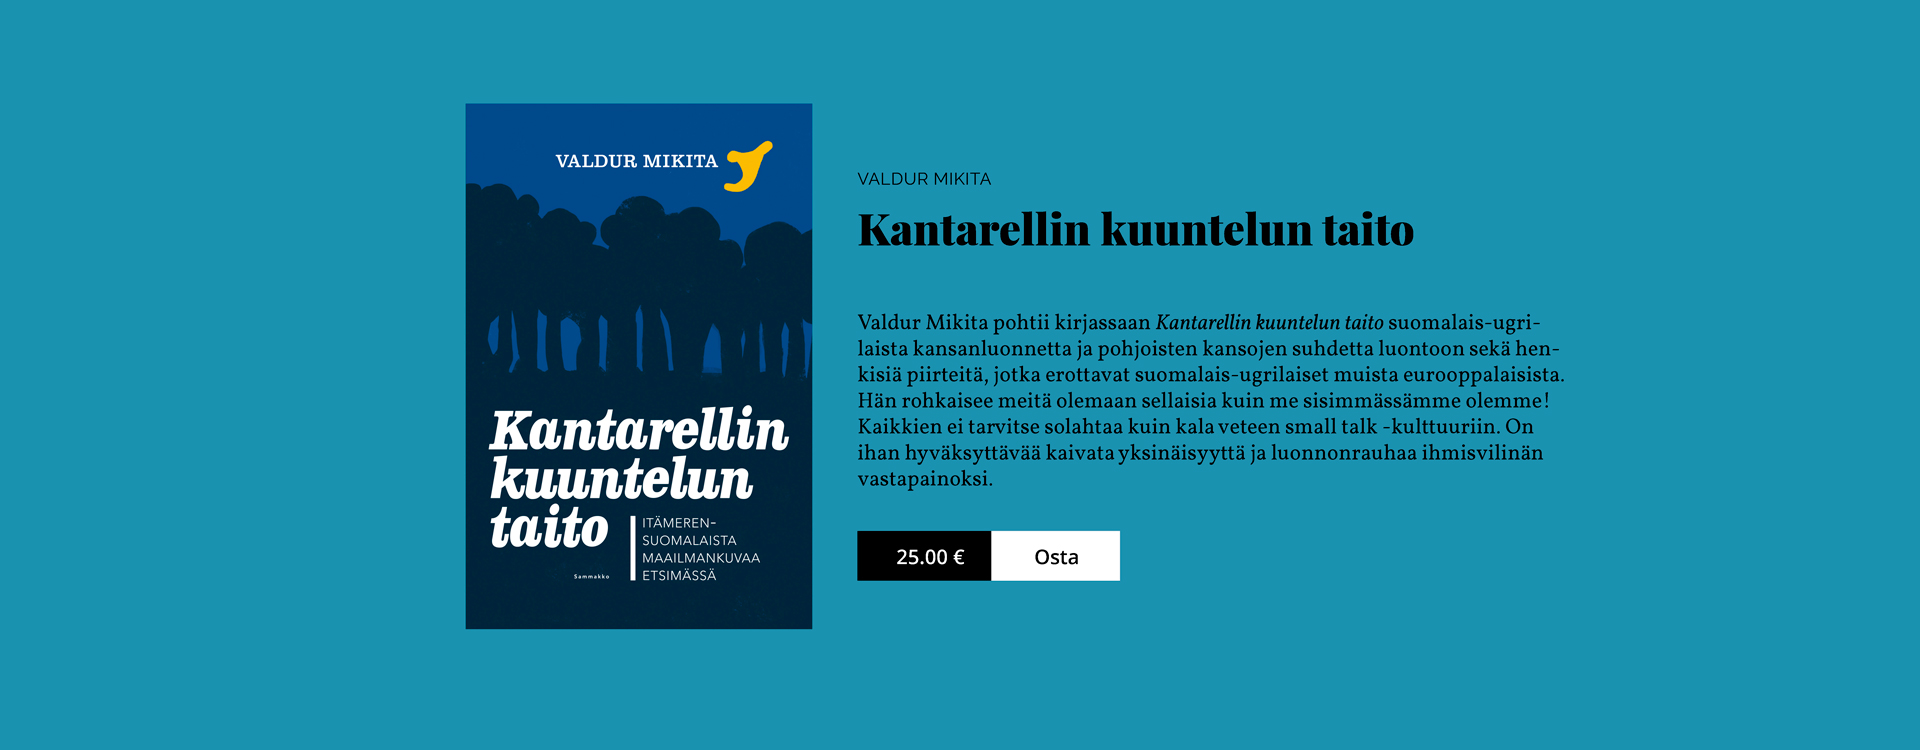 Kantarellin-slidemainos